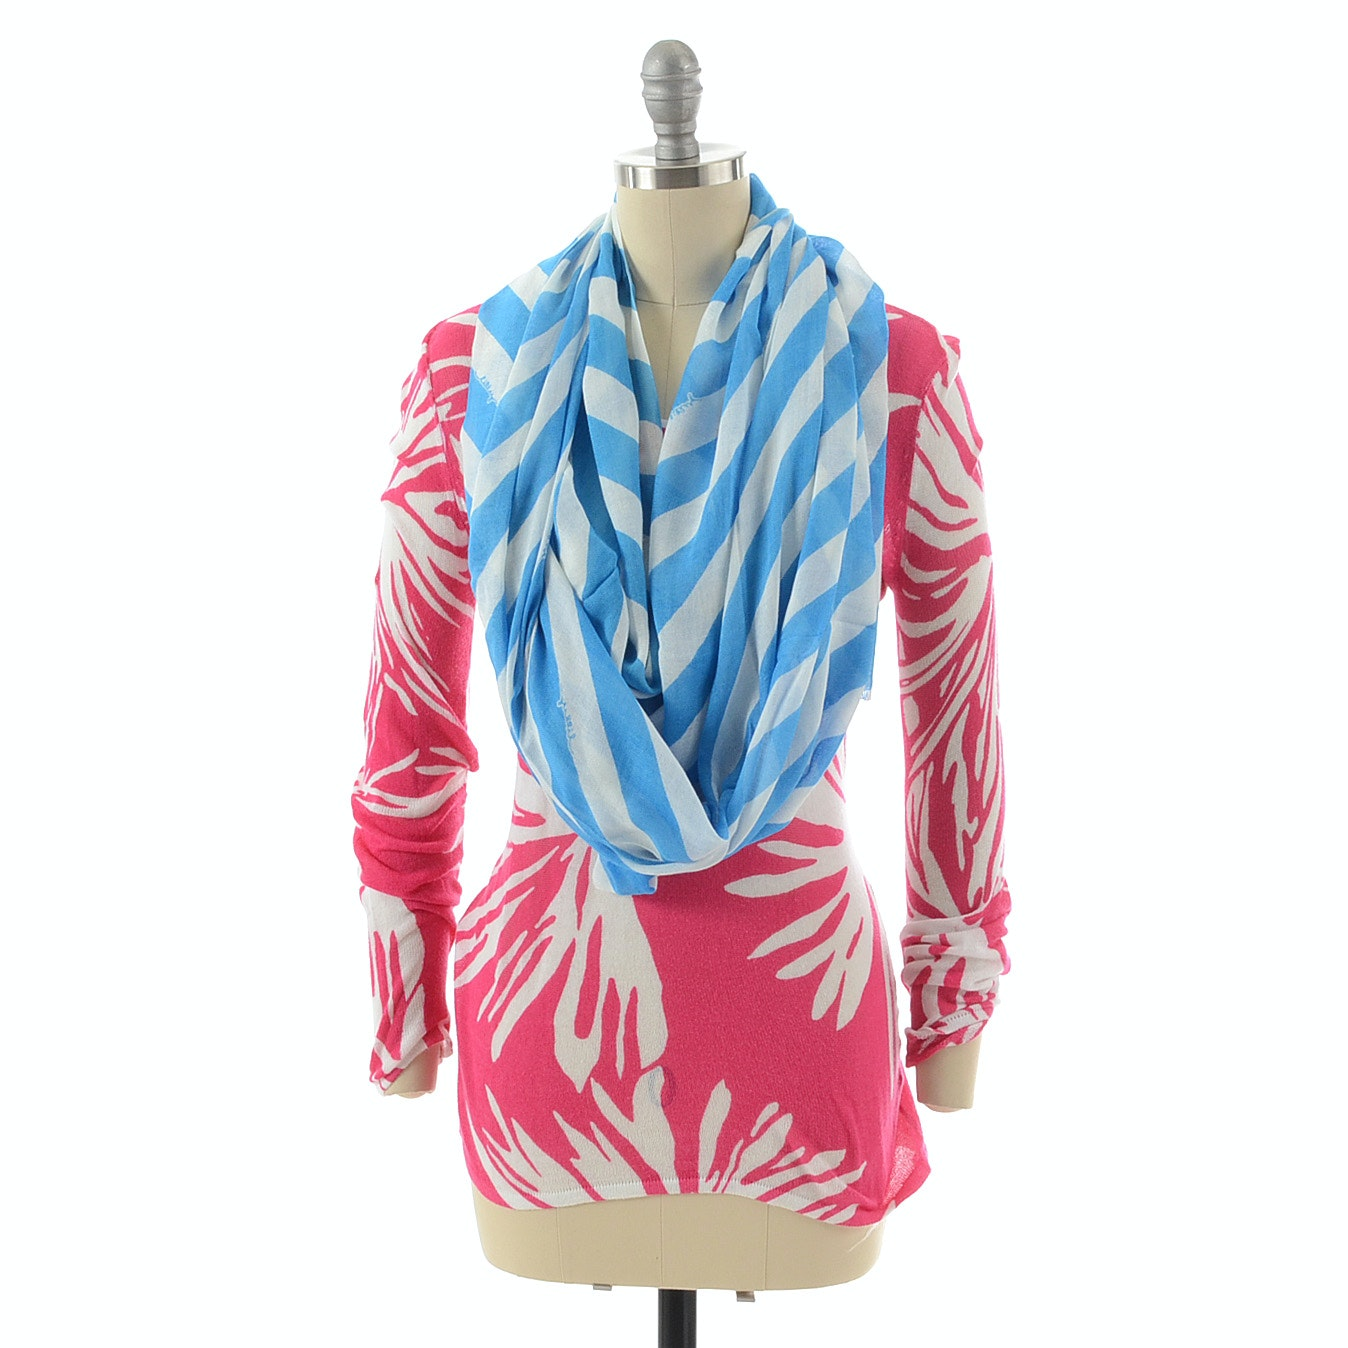 Lilly Pulitzer Scarf and Sweater